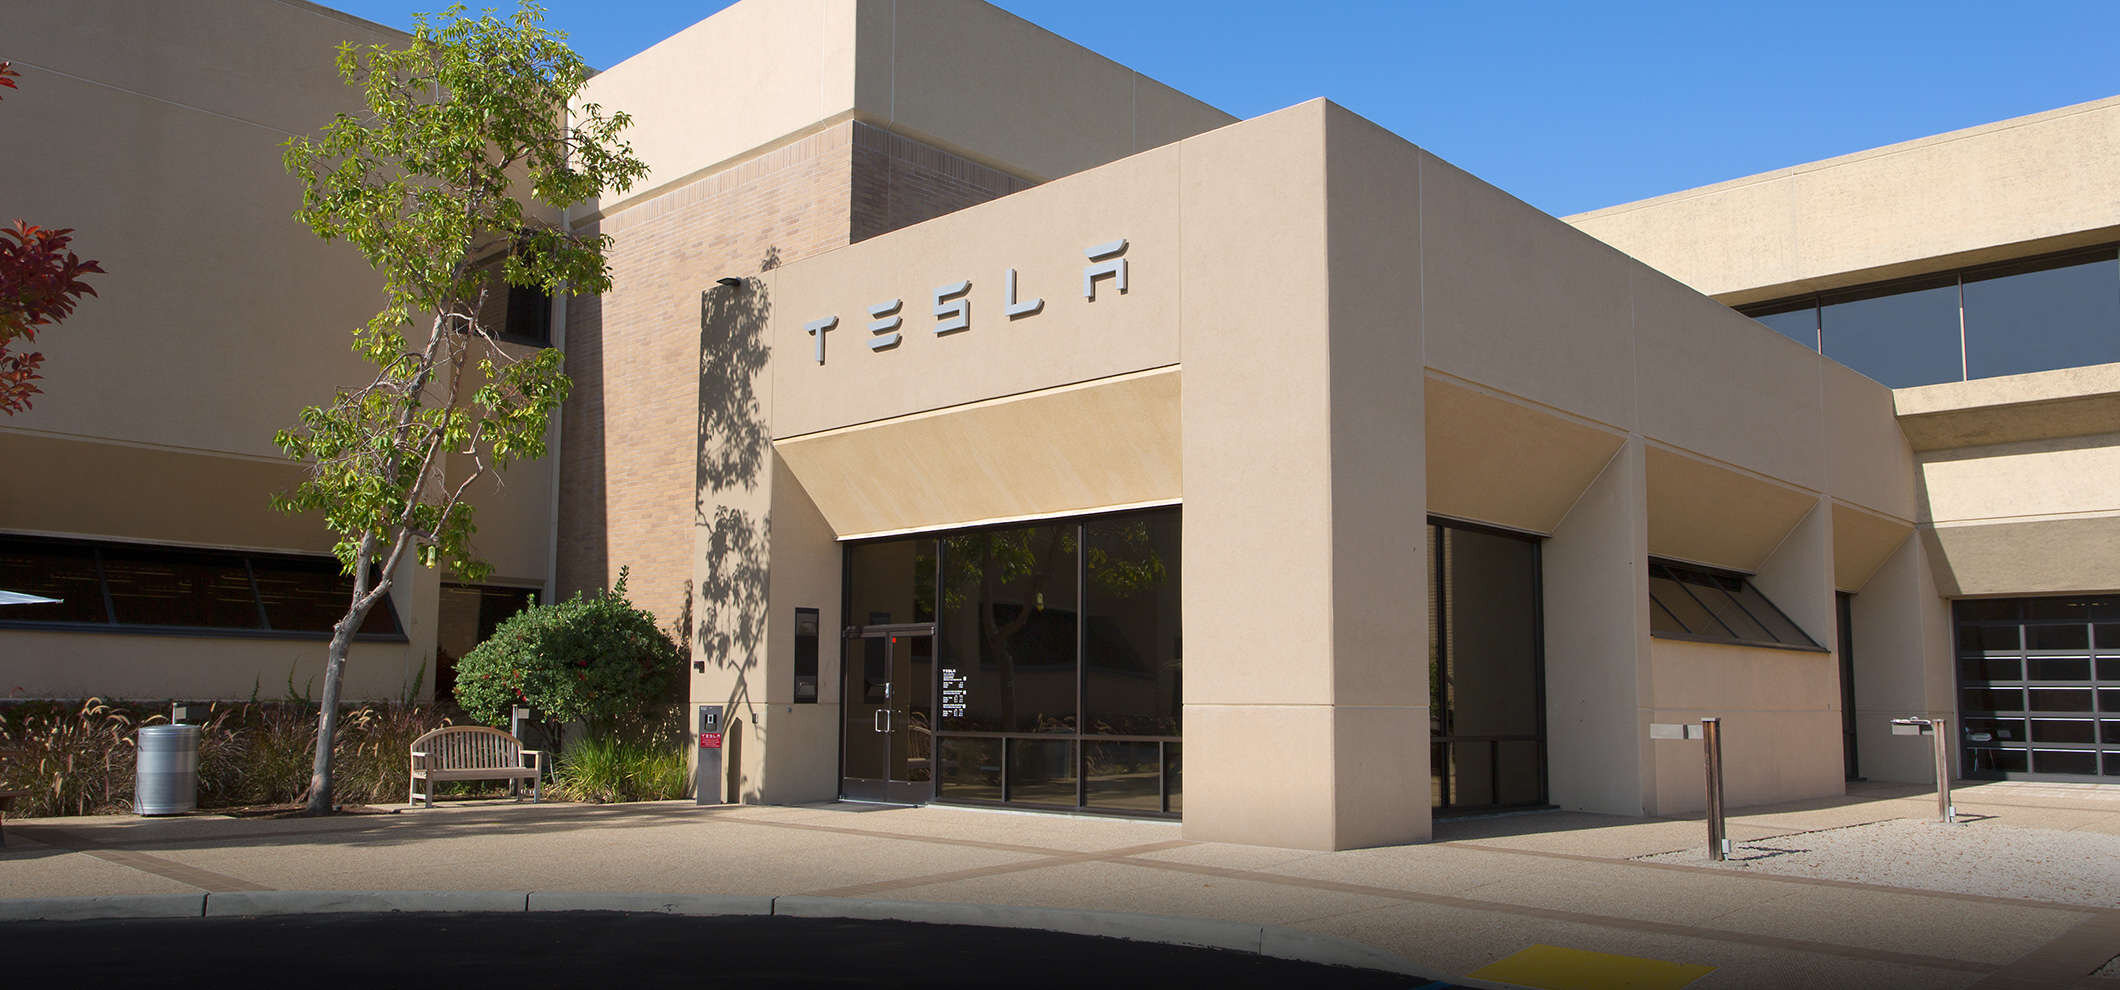 Tesla is an American automotive and energy company based in Palo Alto, California. Source: Electrek